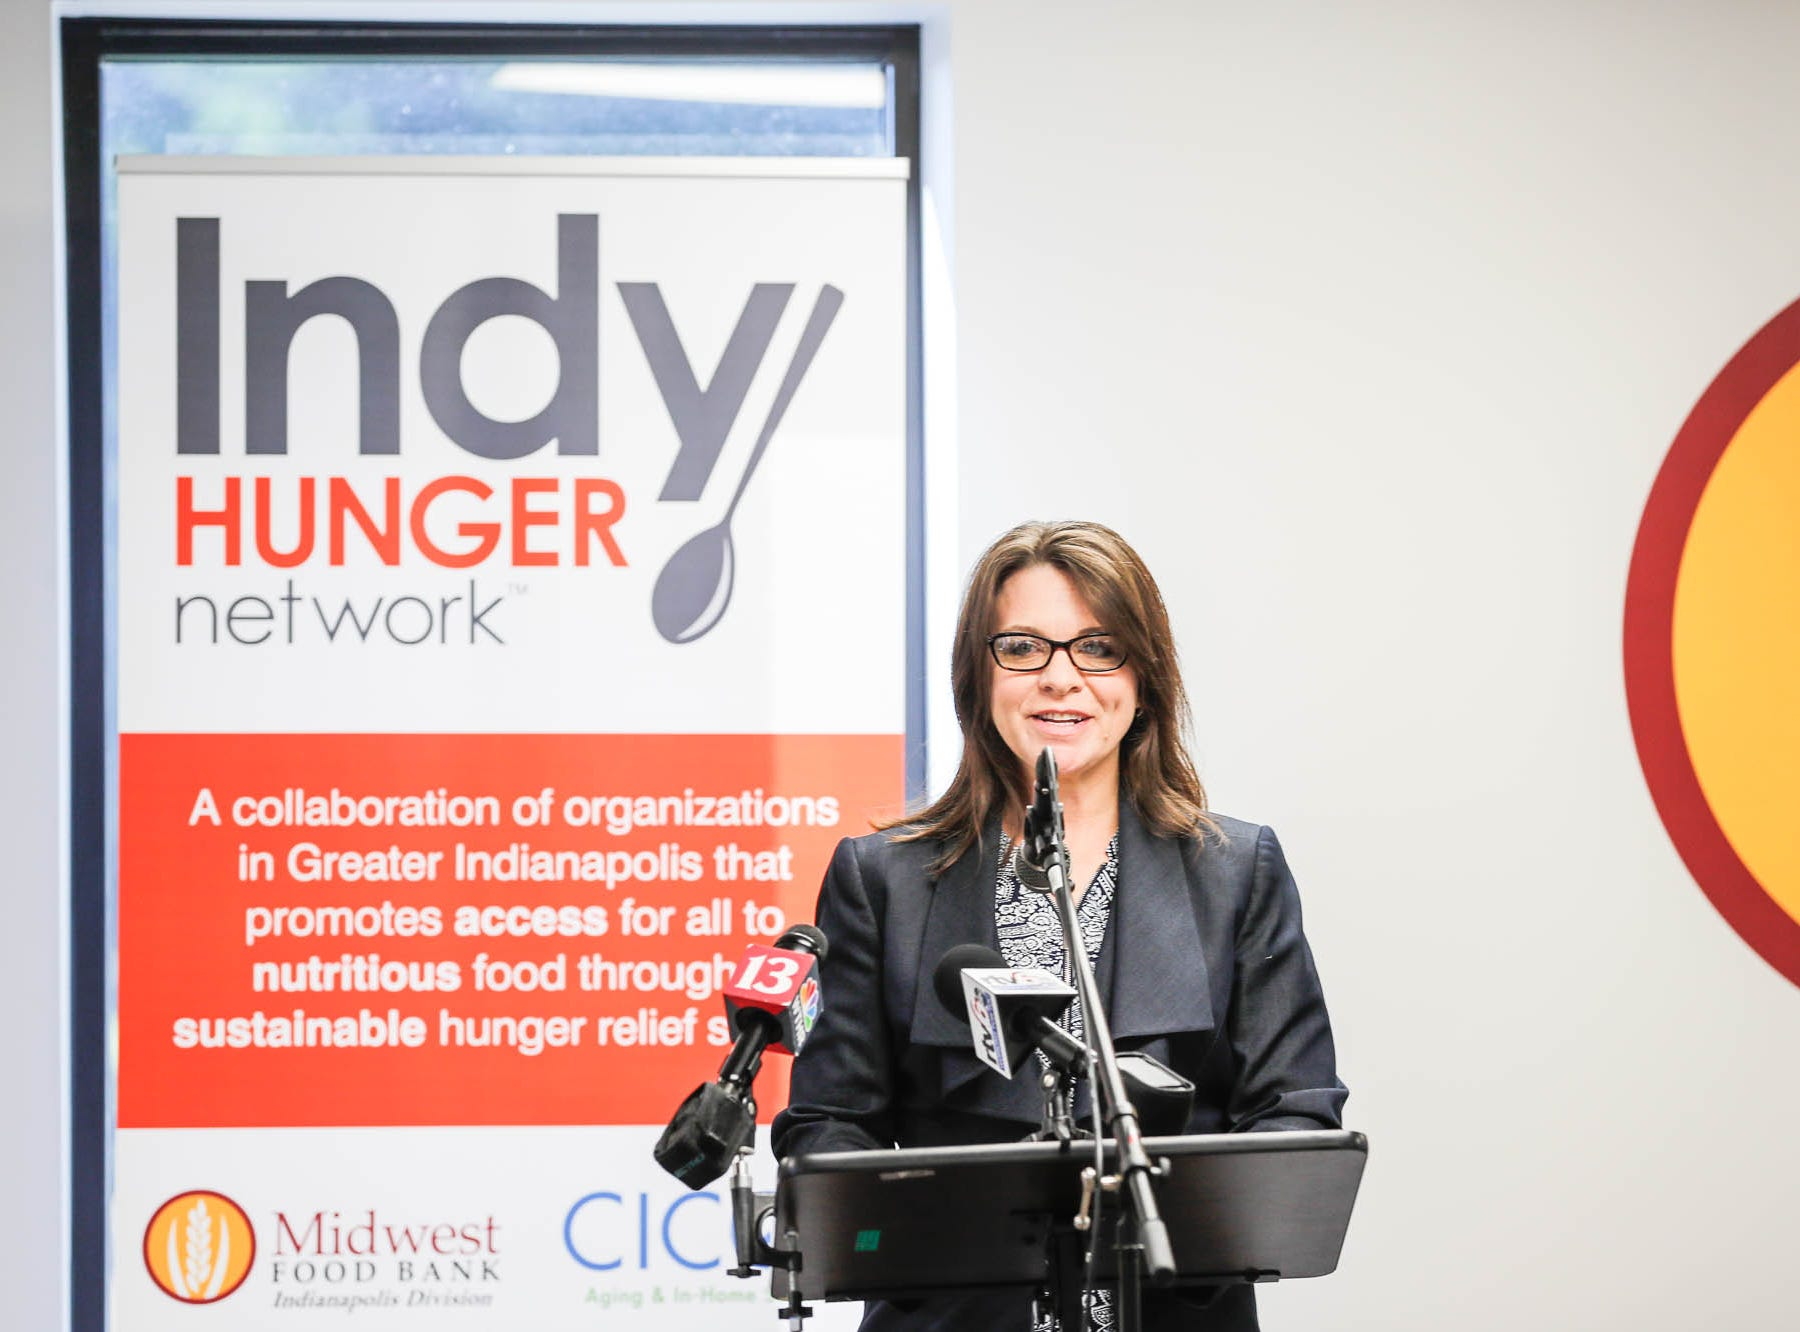 Indiana Motor Truck Association Vice President, Barbara Hunt, speaks during a press conference announcing the expansion of the Food Drop program, which partnered with Indiana's largest hunger relief agencies to make it easier for truck drivers to donate store-rejected food on Tuesday, Oct. 23, 2018.